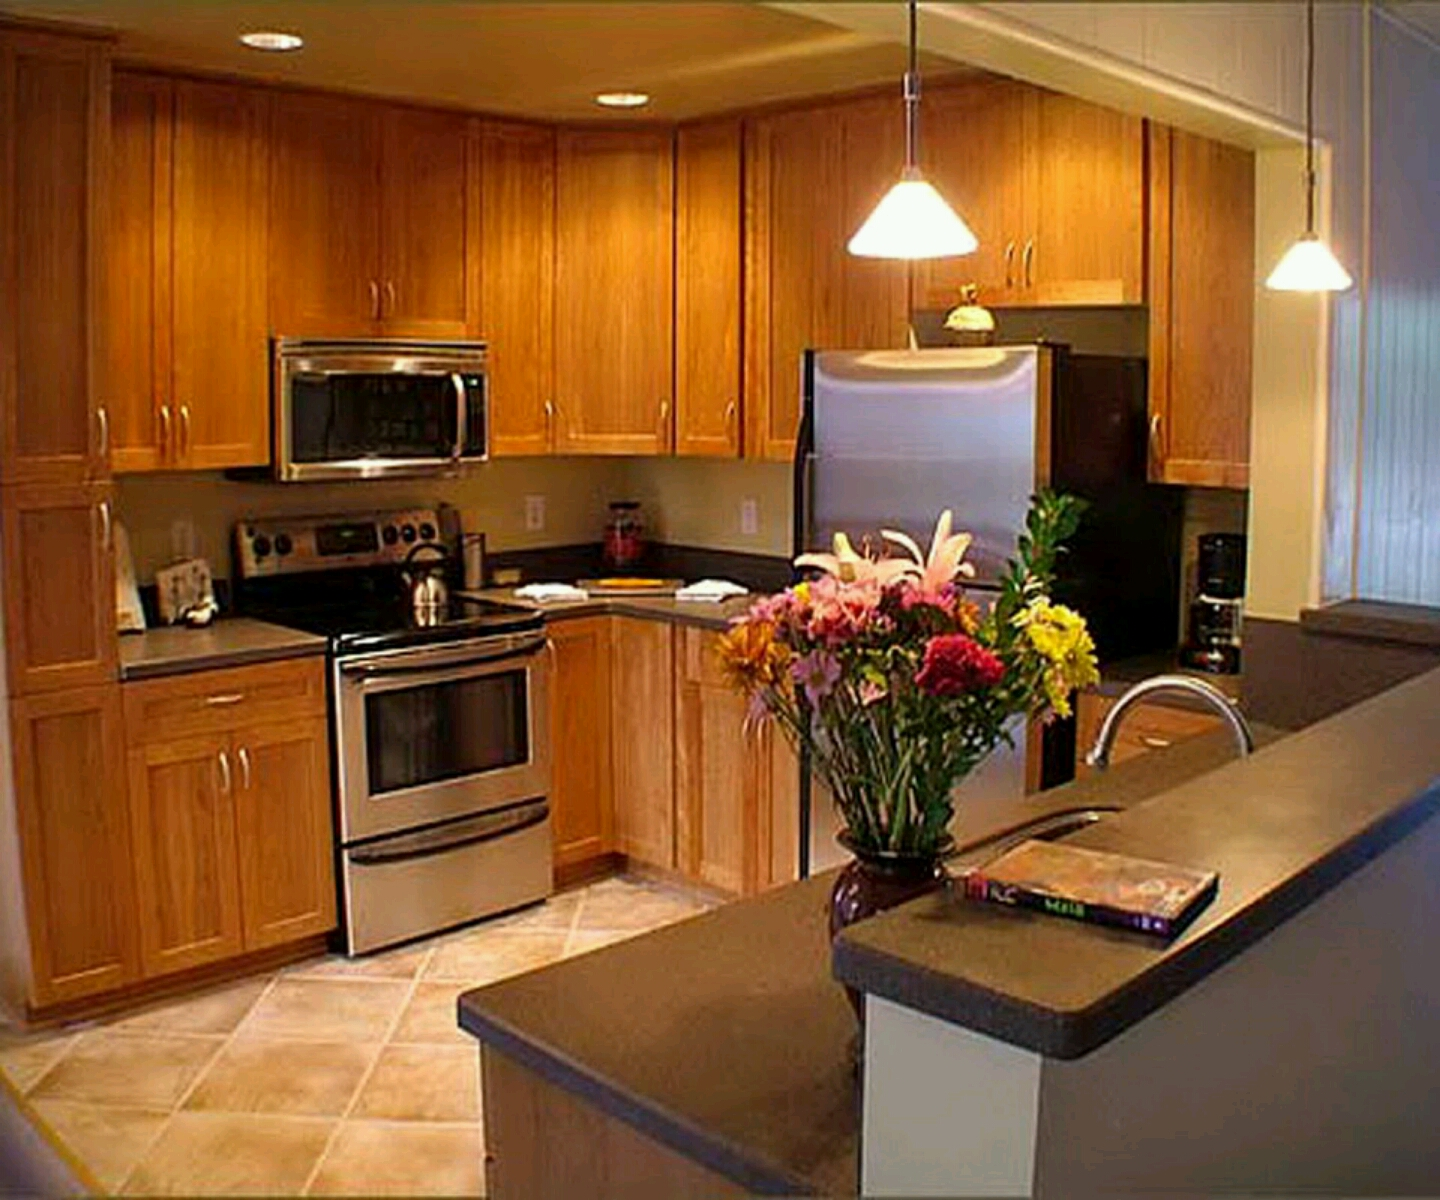 Contemporary wooden kitchen cabinets bill house plans for Modern kitchen cabinet design